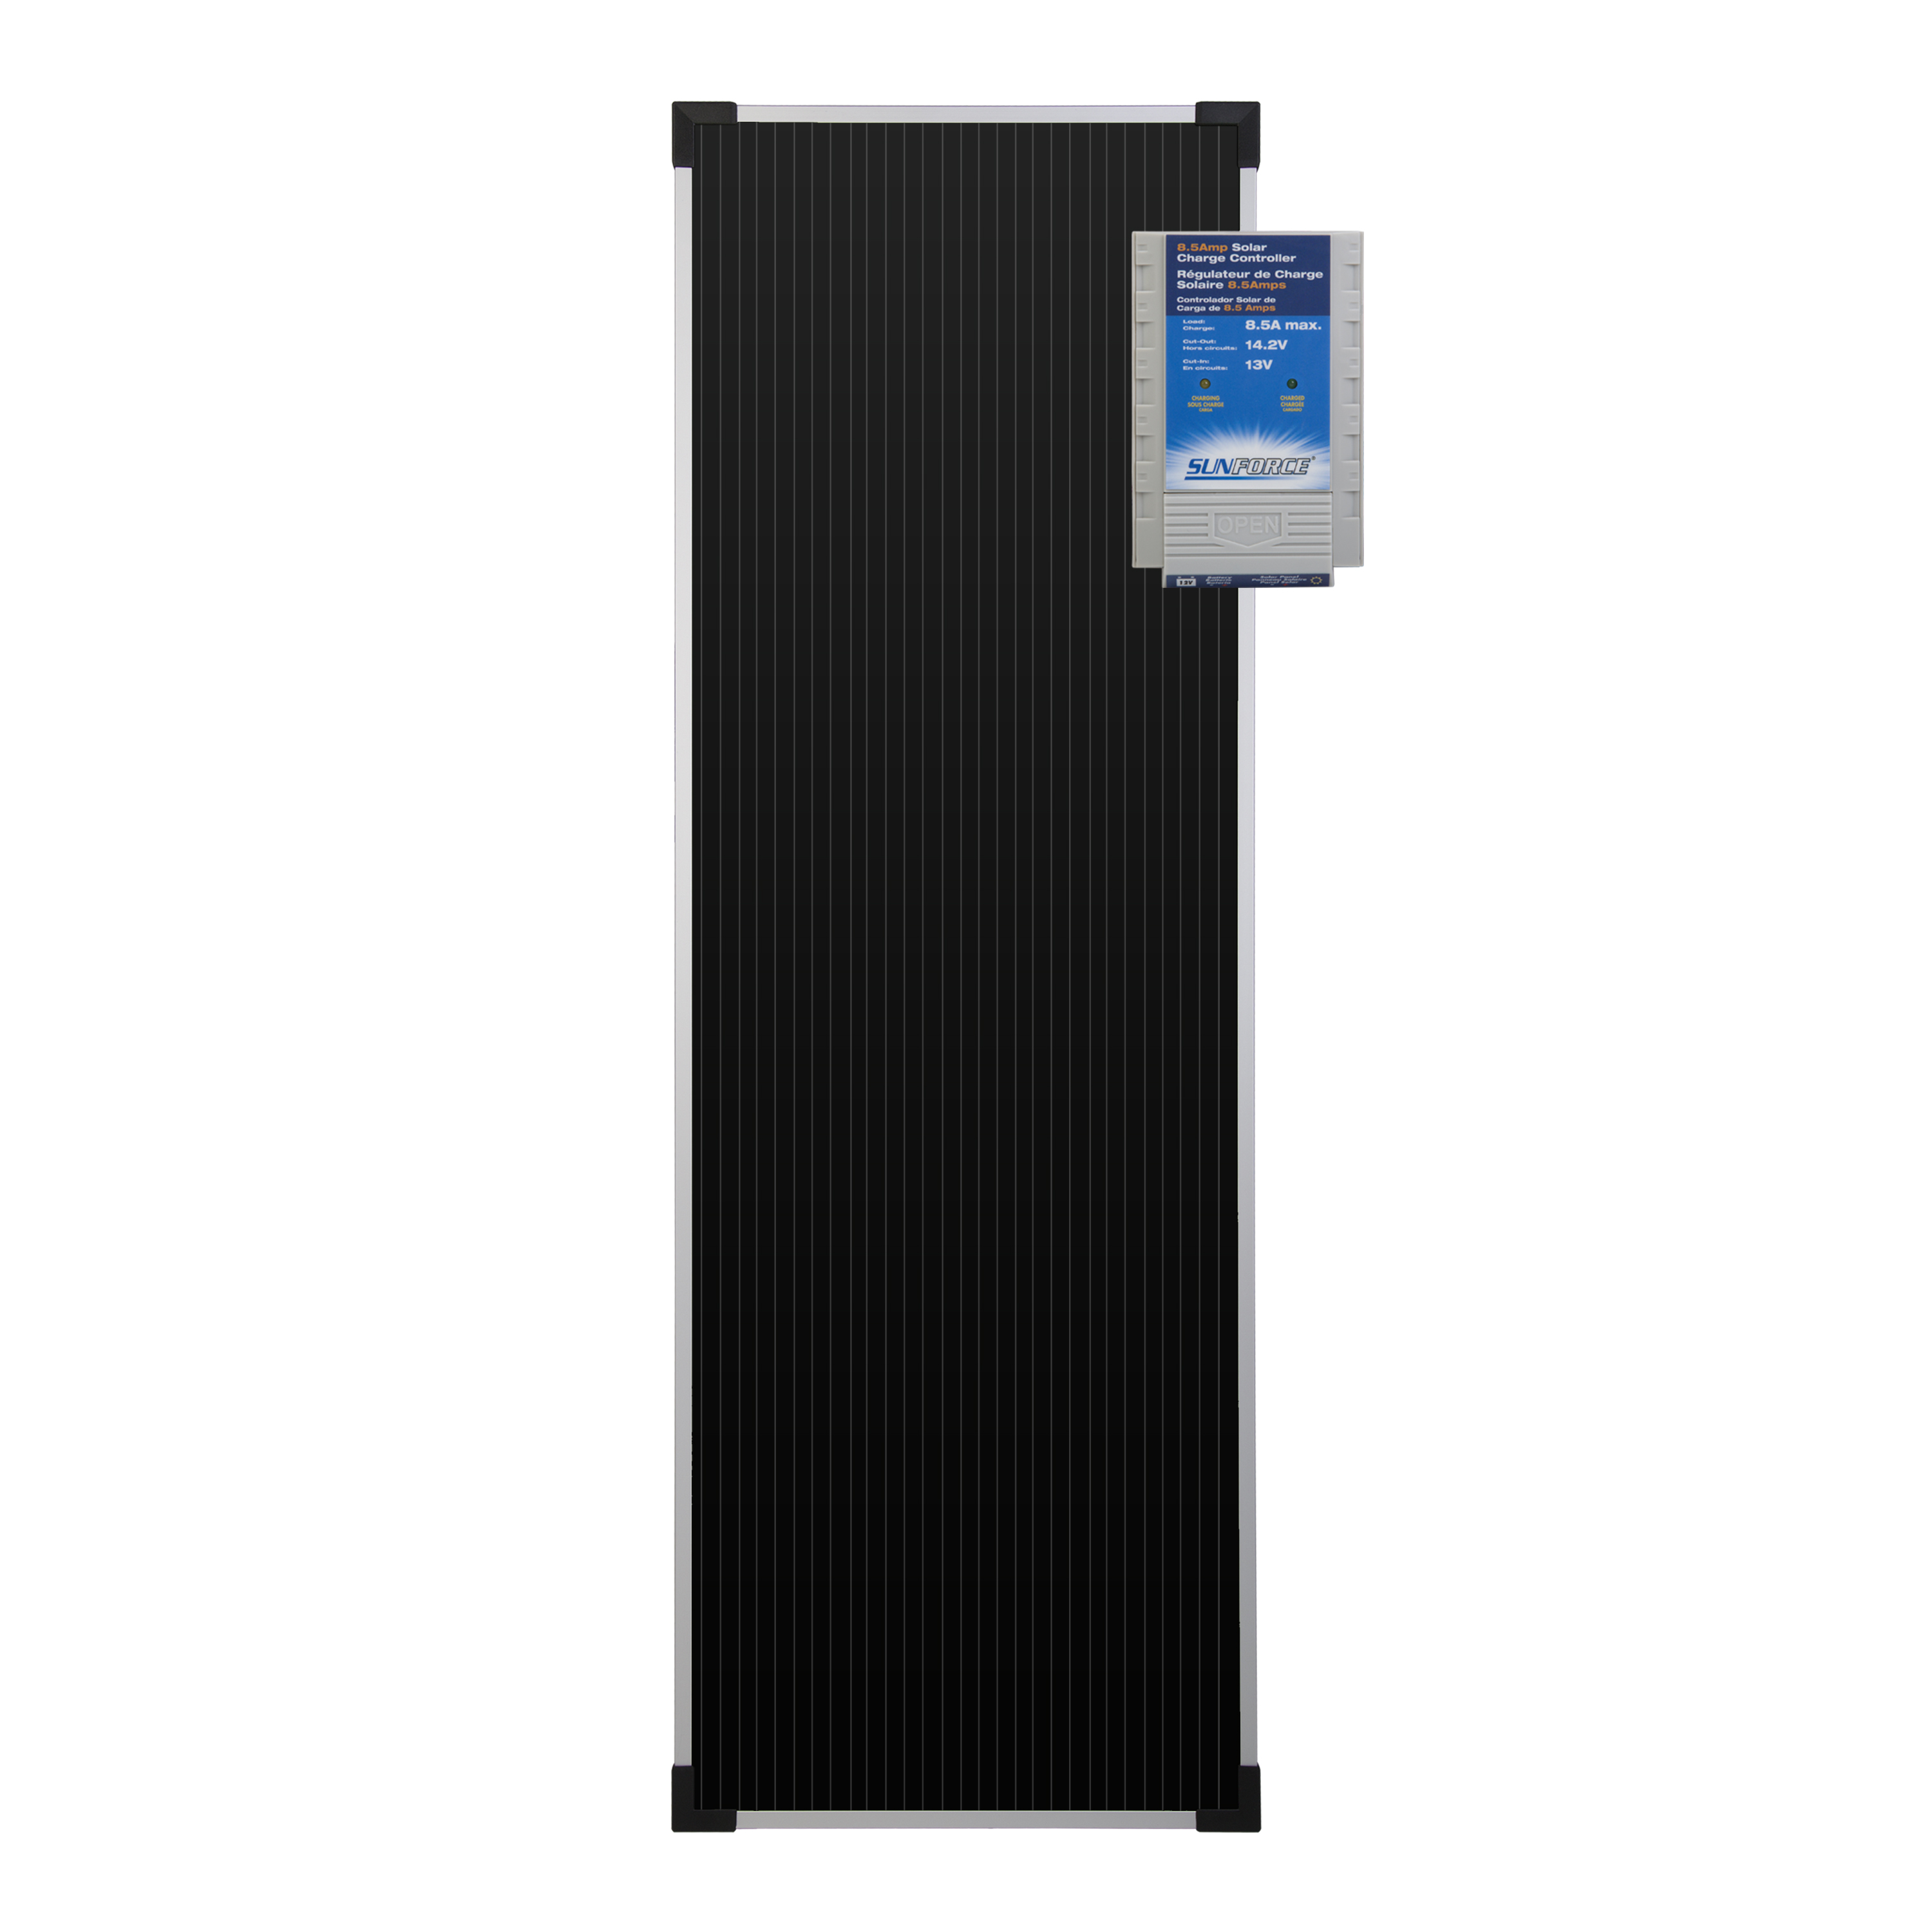 20 Watt 12 Volt Solar Battery Charger With 8 5 Amp Charge